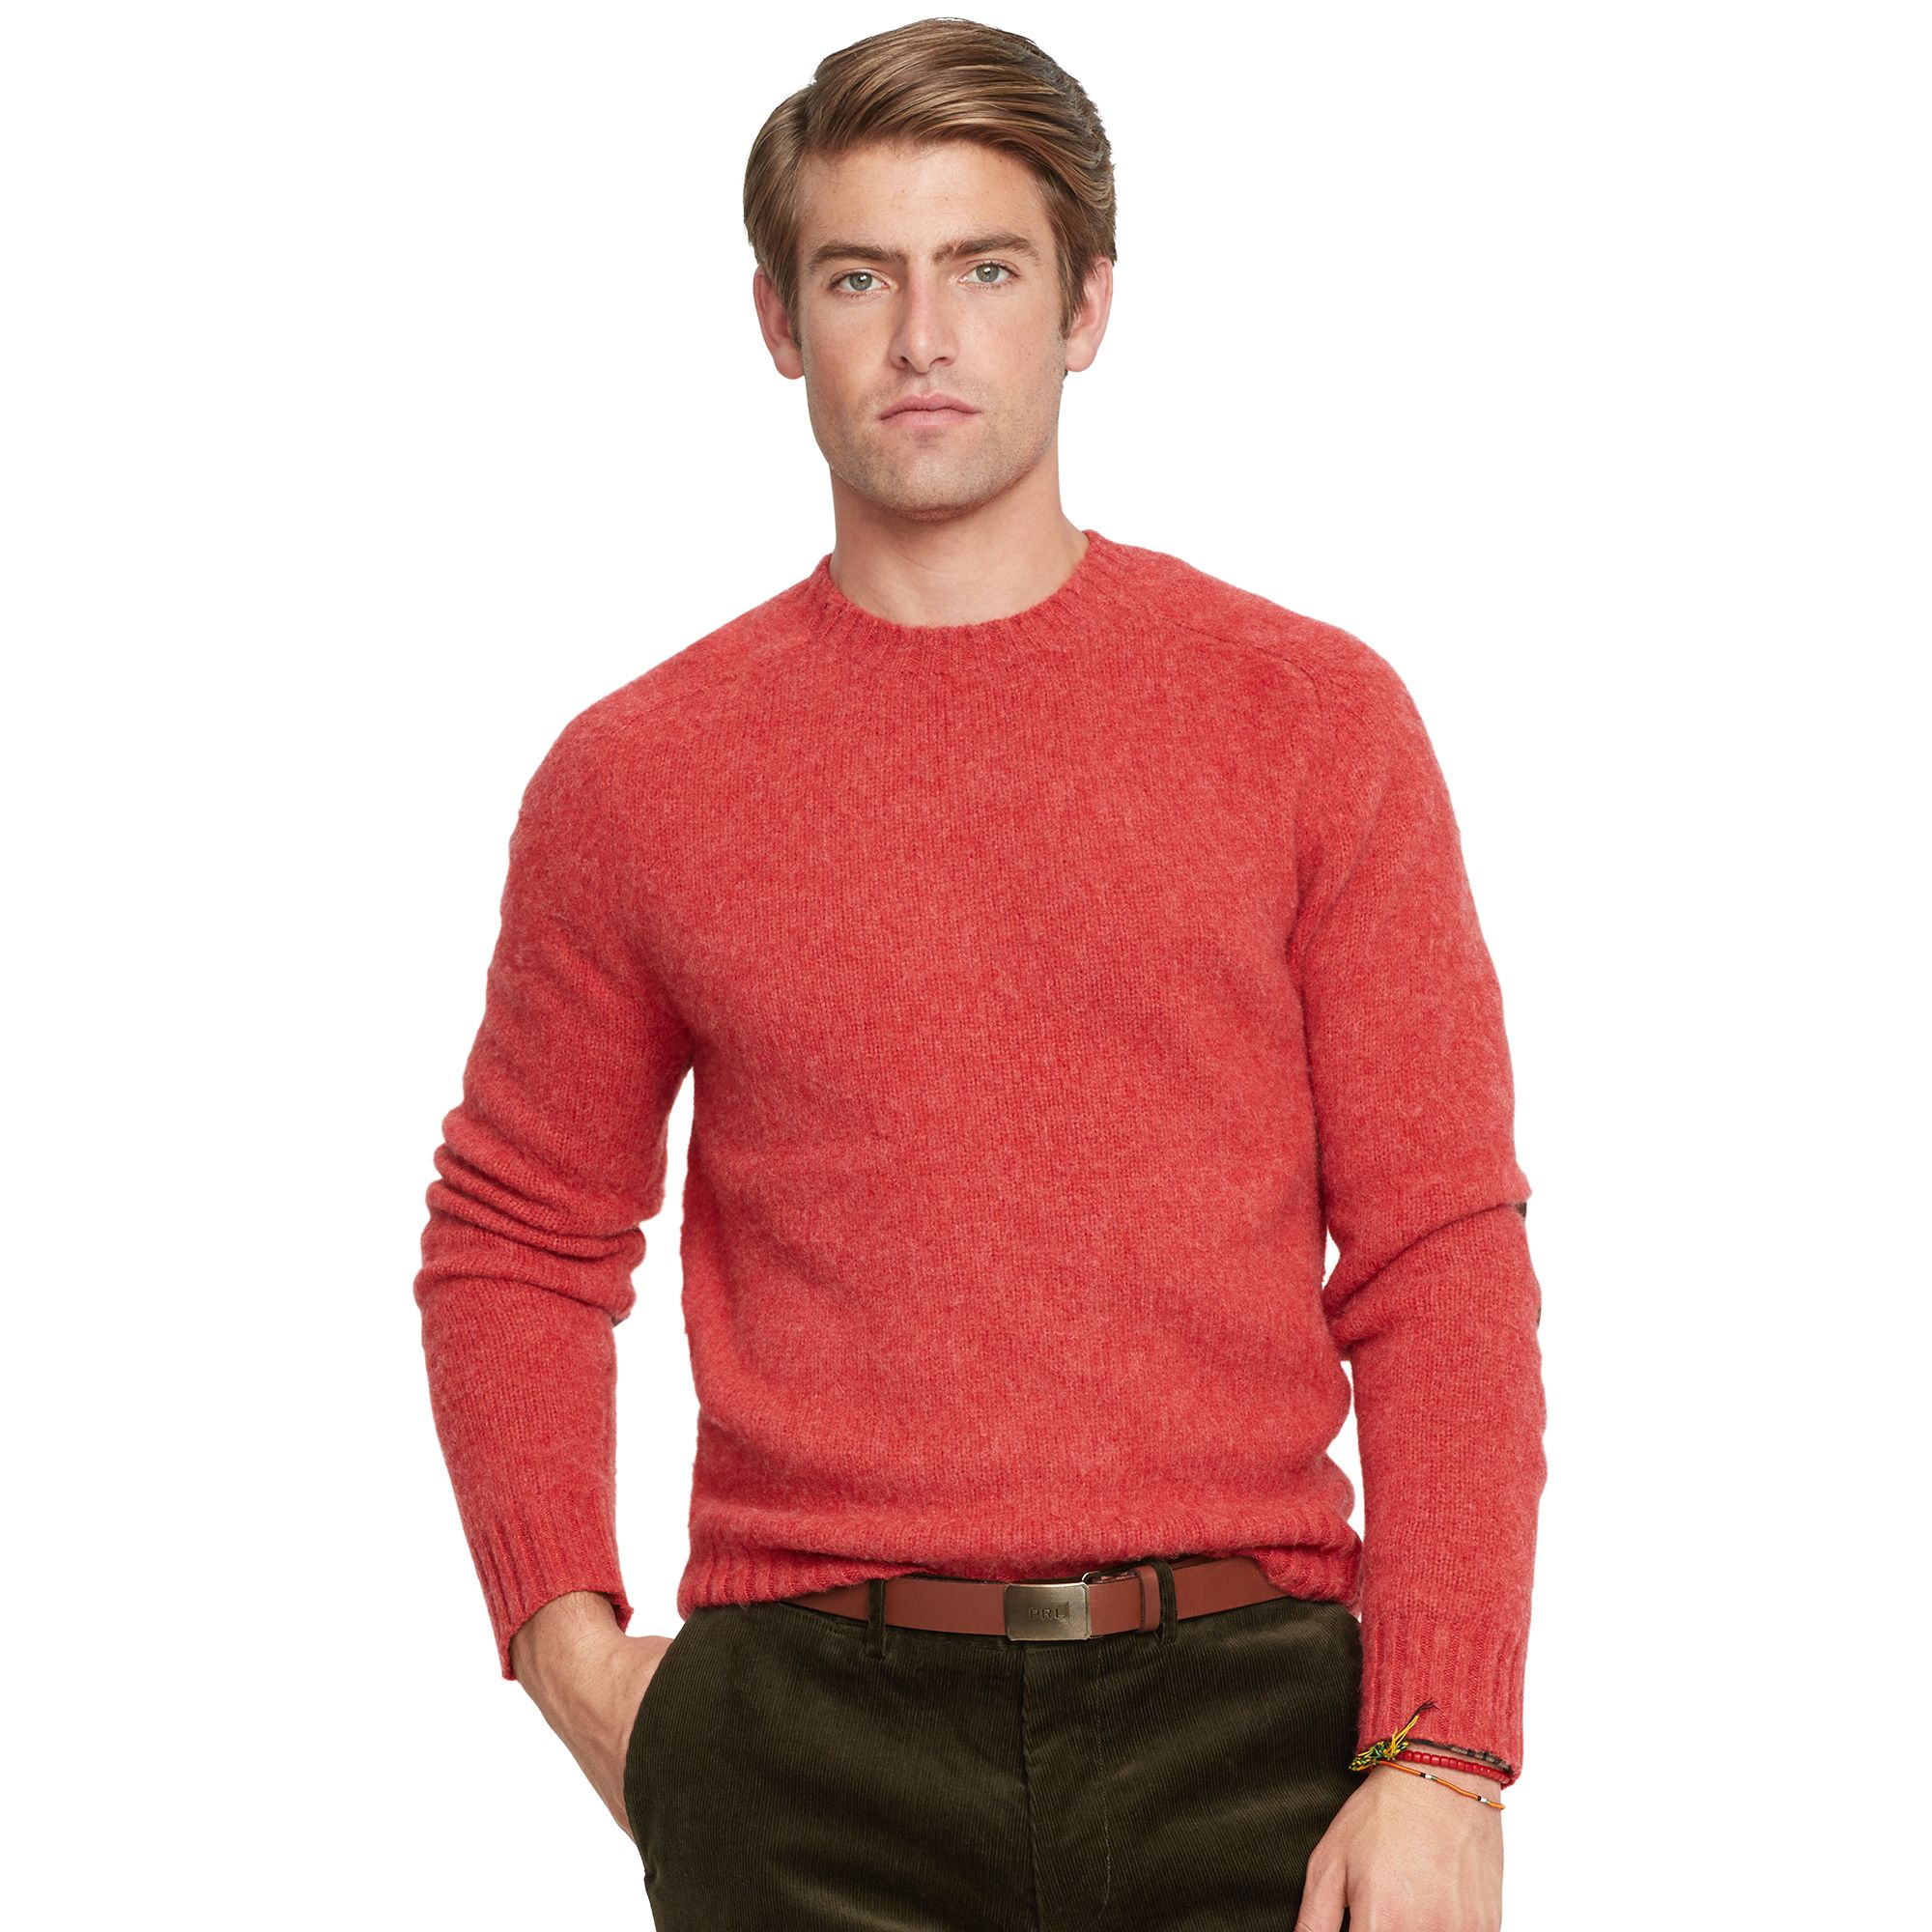 Ralph Lauren Latest Fall Winter Coats and Western Dresses Sweaters Collection for Men and Women 2014-2015 (24)